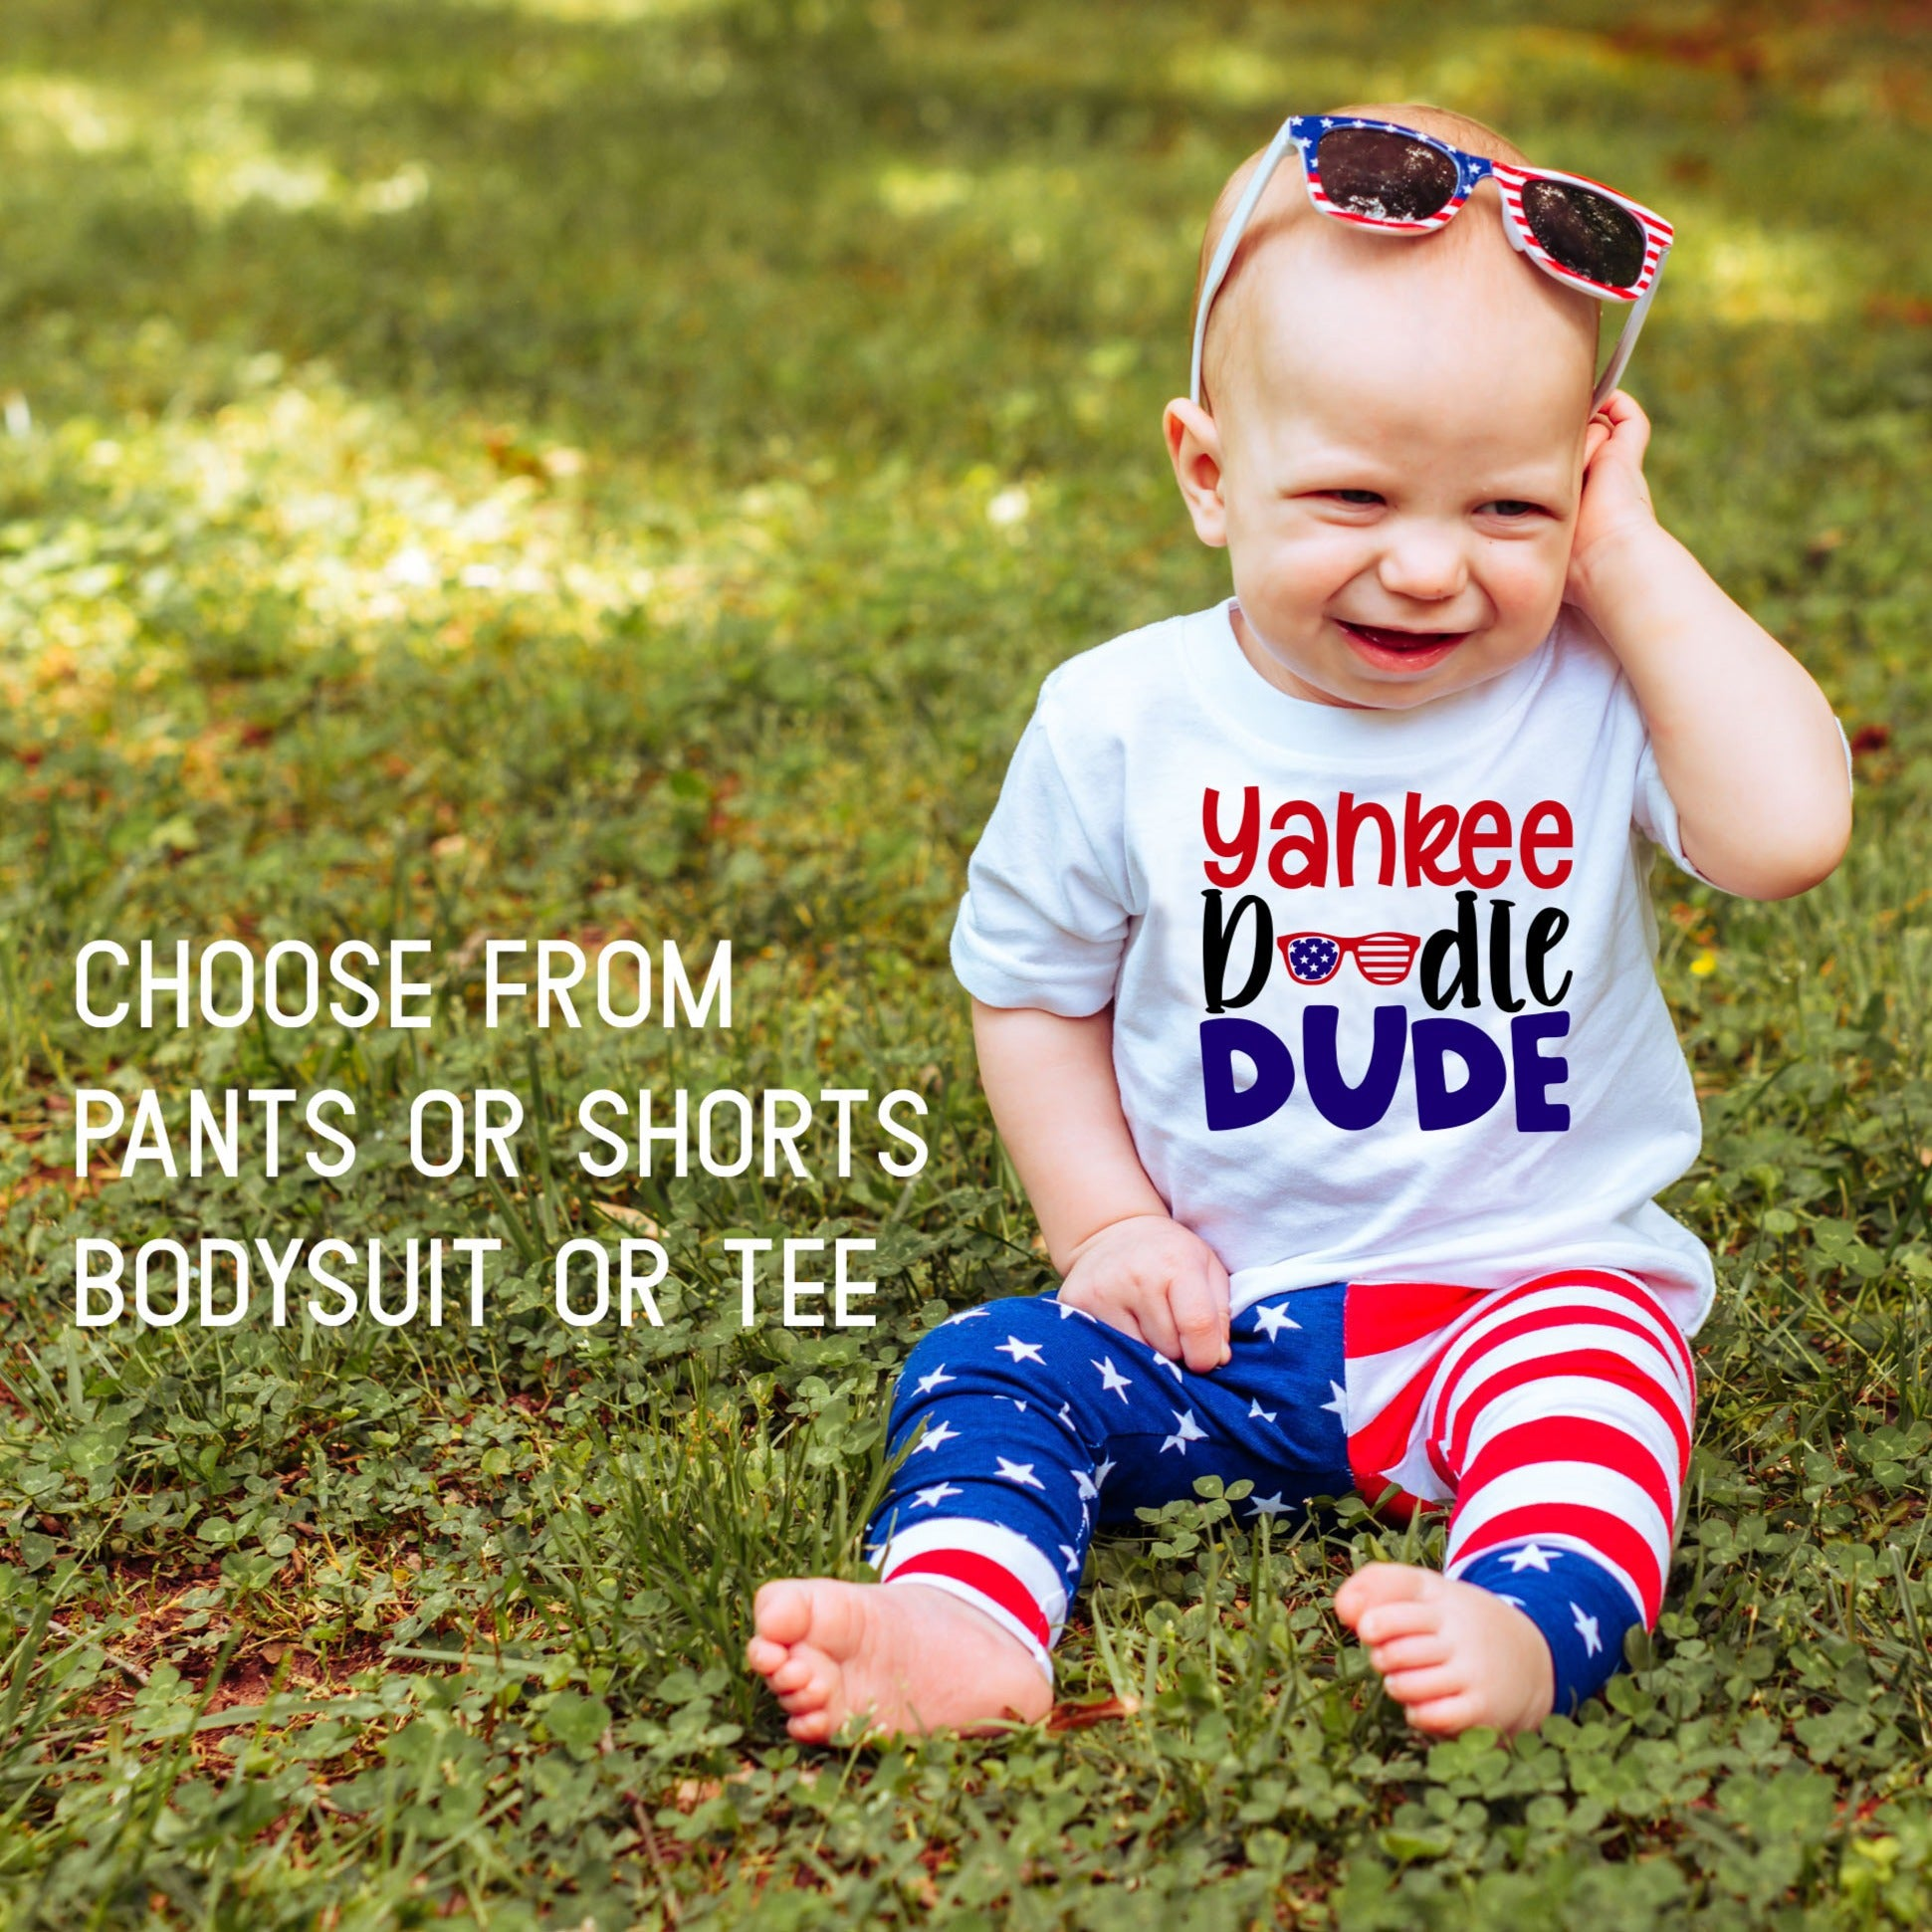 baby boy in yankee doodle dude shirt with sunglasses and american flag pants